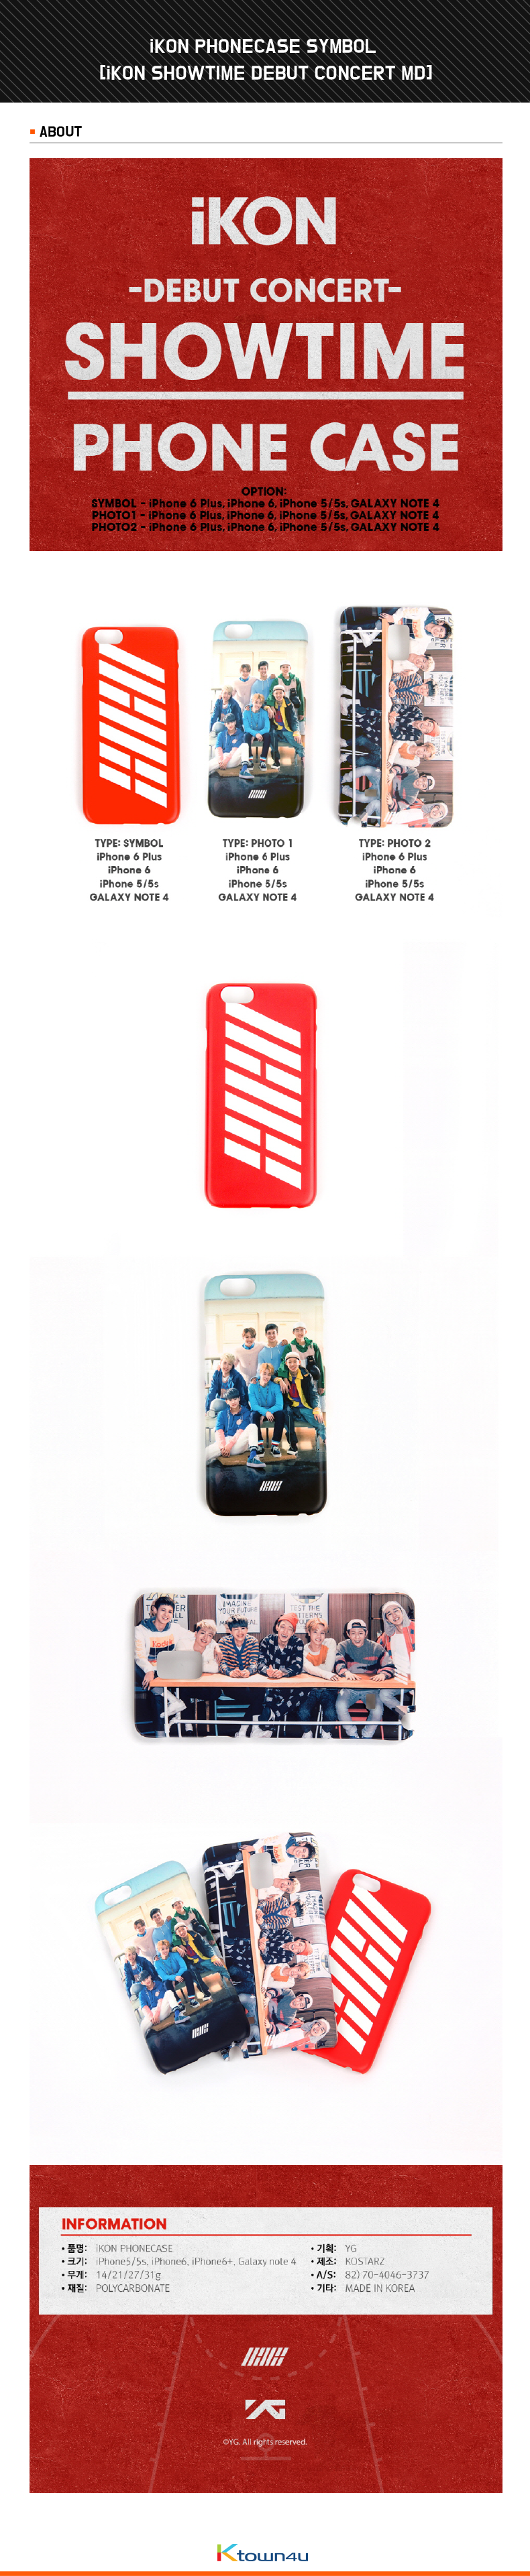 iKON - PHONECASE SYMBOL [iKON SHOWTIME DEBUT CONCERT MD]